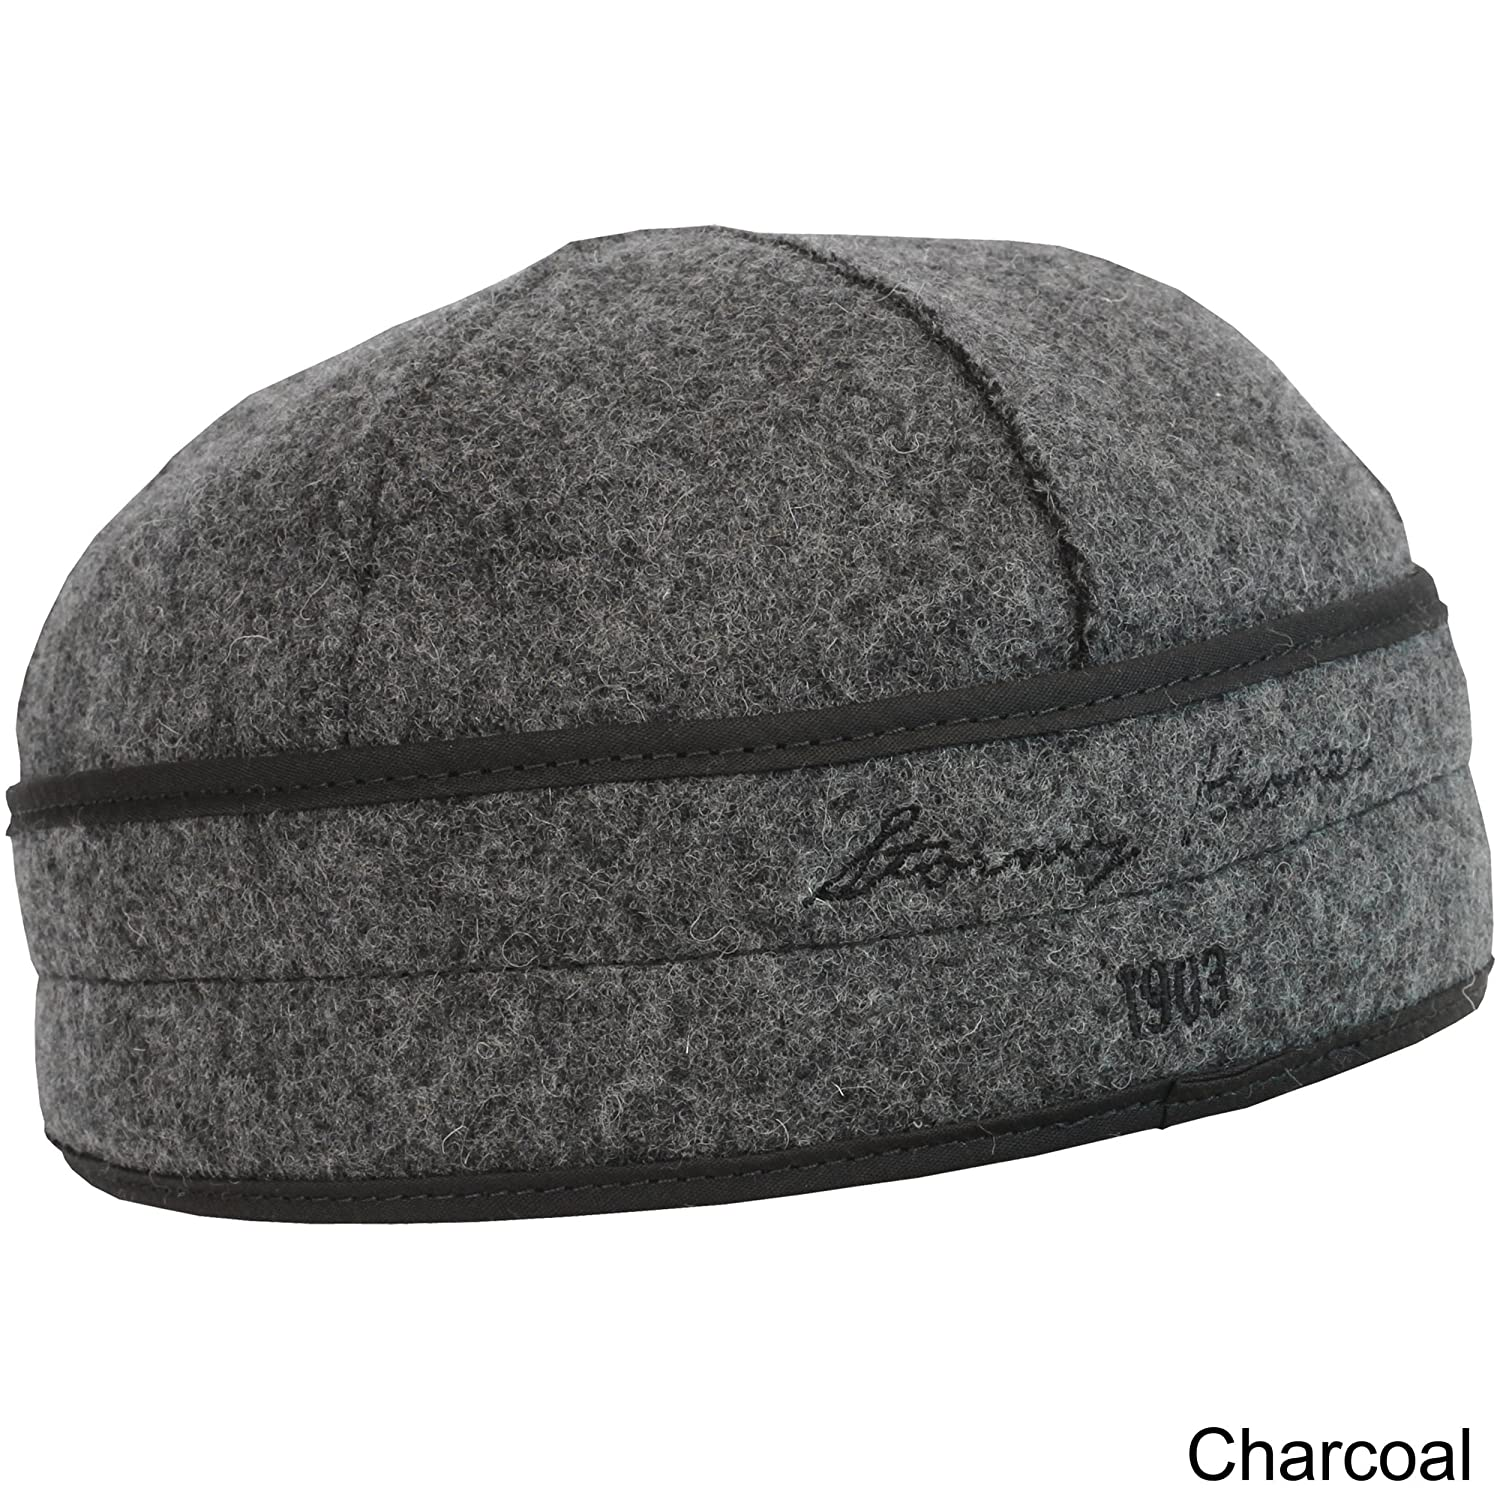 fe46bf636b1e9 Stormy Kromer Men s Brimless Wool Cap at Amazon Men s Clothing store